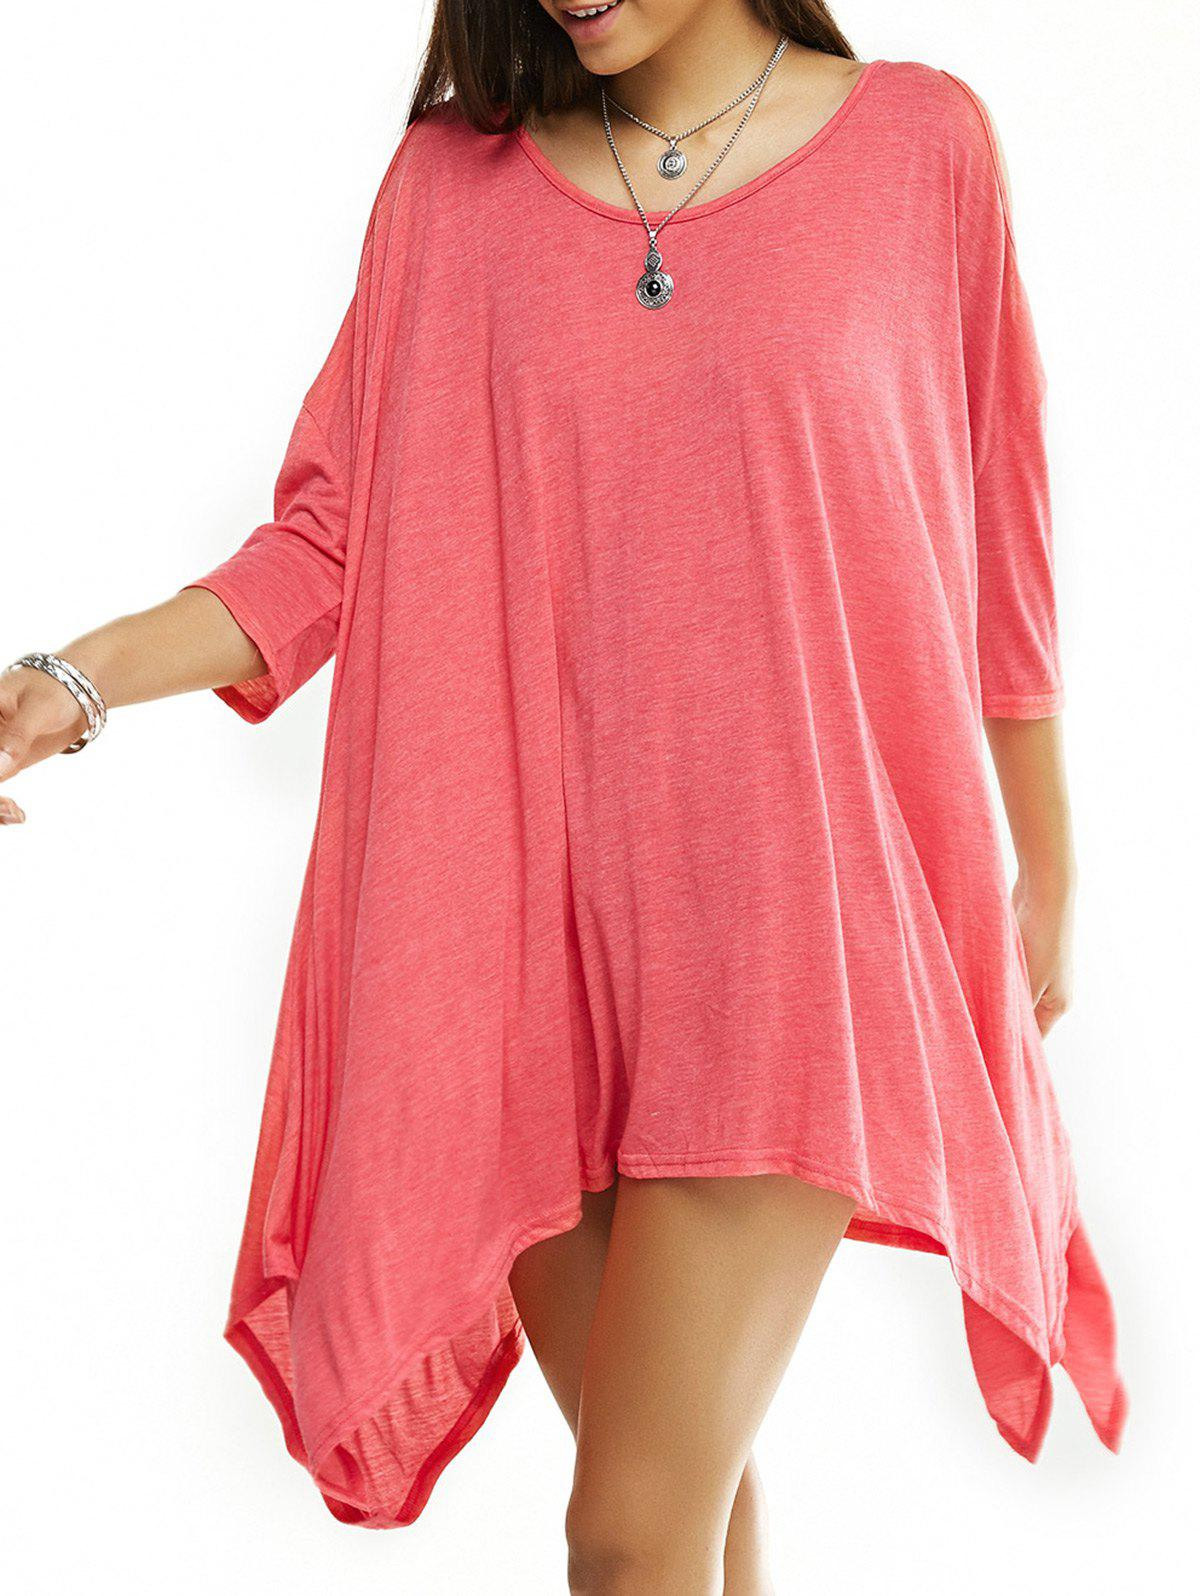 Asymmetrical Cut Out Solid Color T-Shirt - WATERMELON RED L